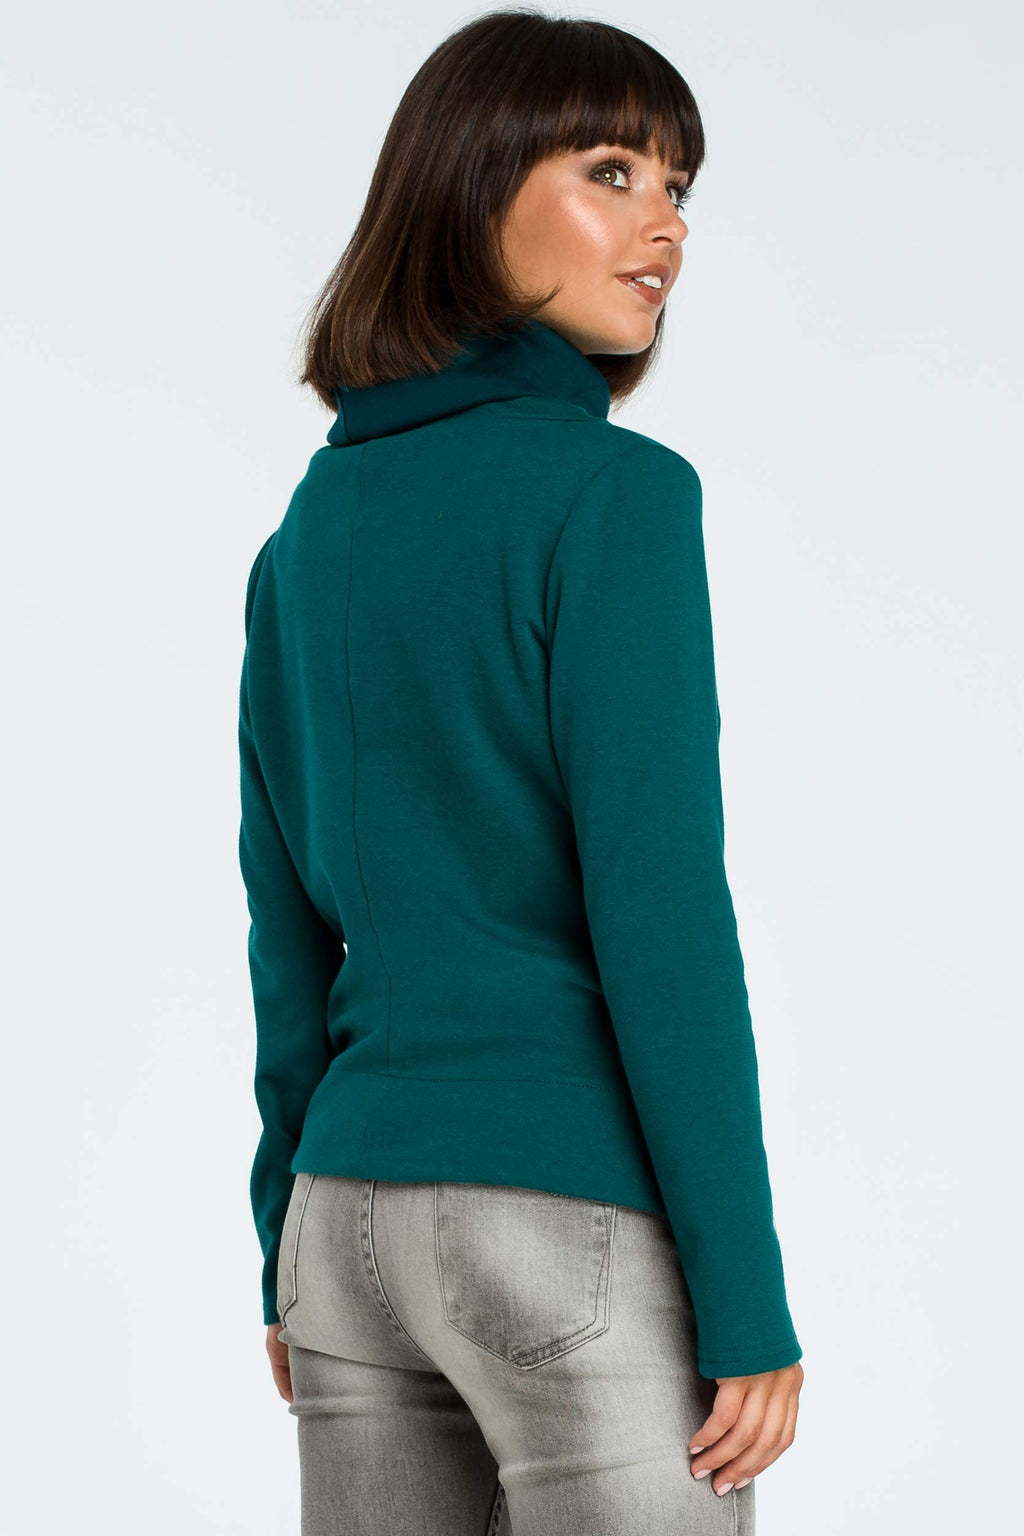 High Collared Green Sweatshirt With A Side Tie - So Chic Boutique